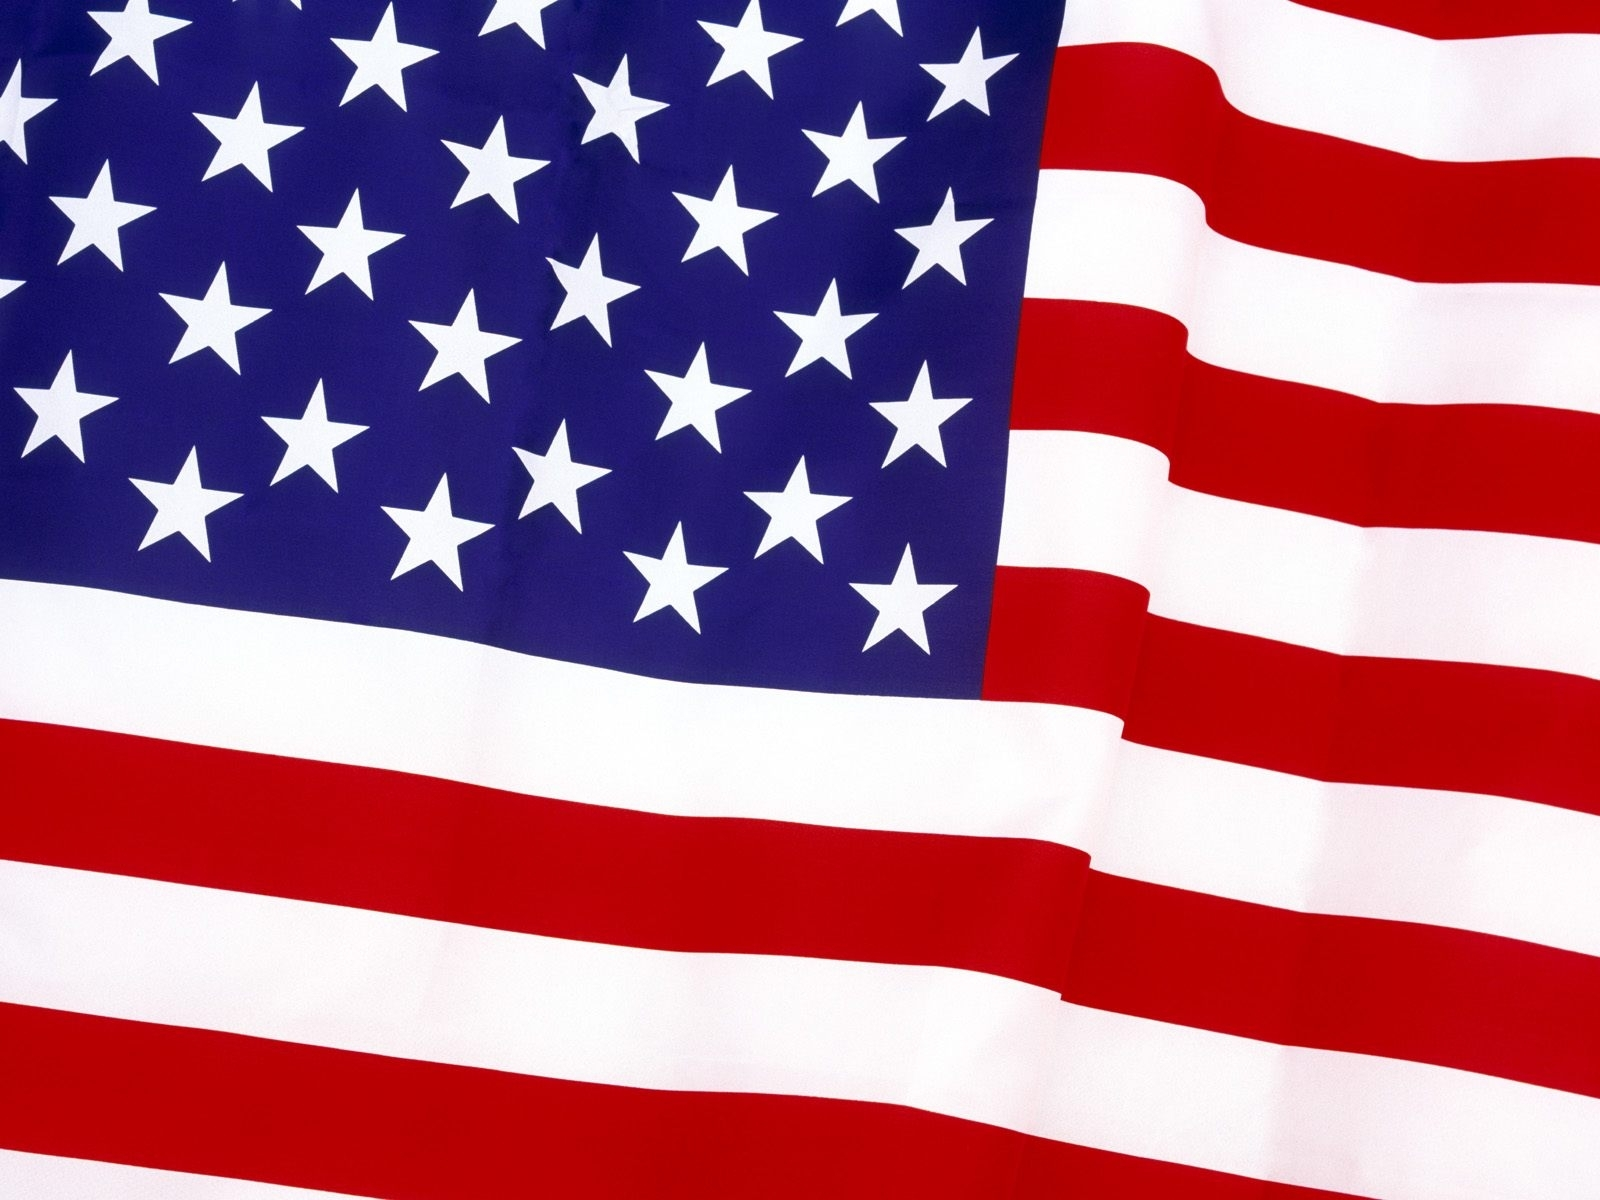 united states of america flag wallpapers | hd wallpapers | id #5825